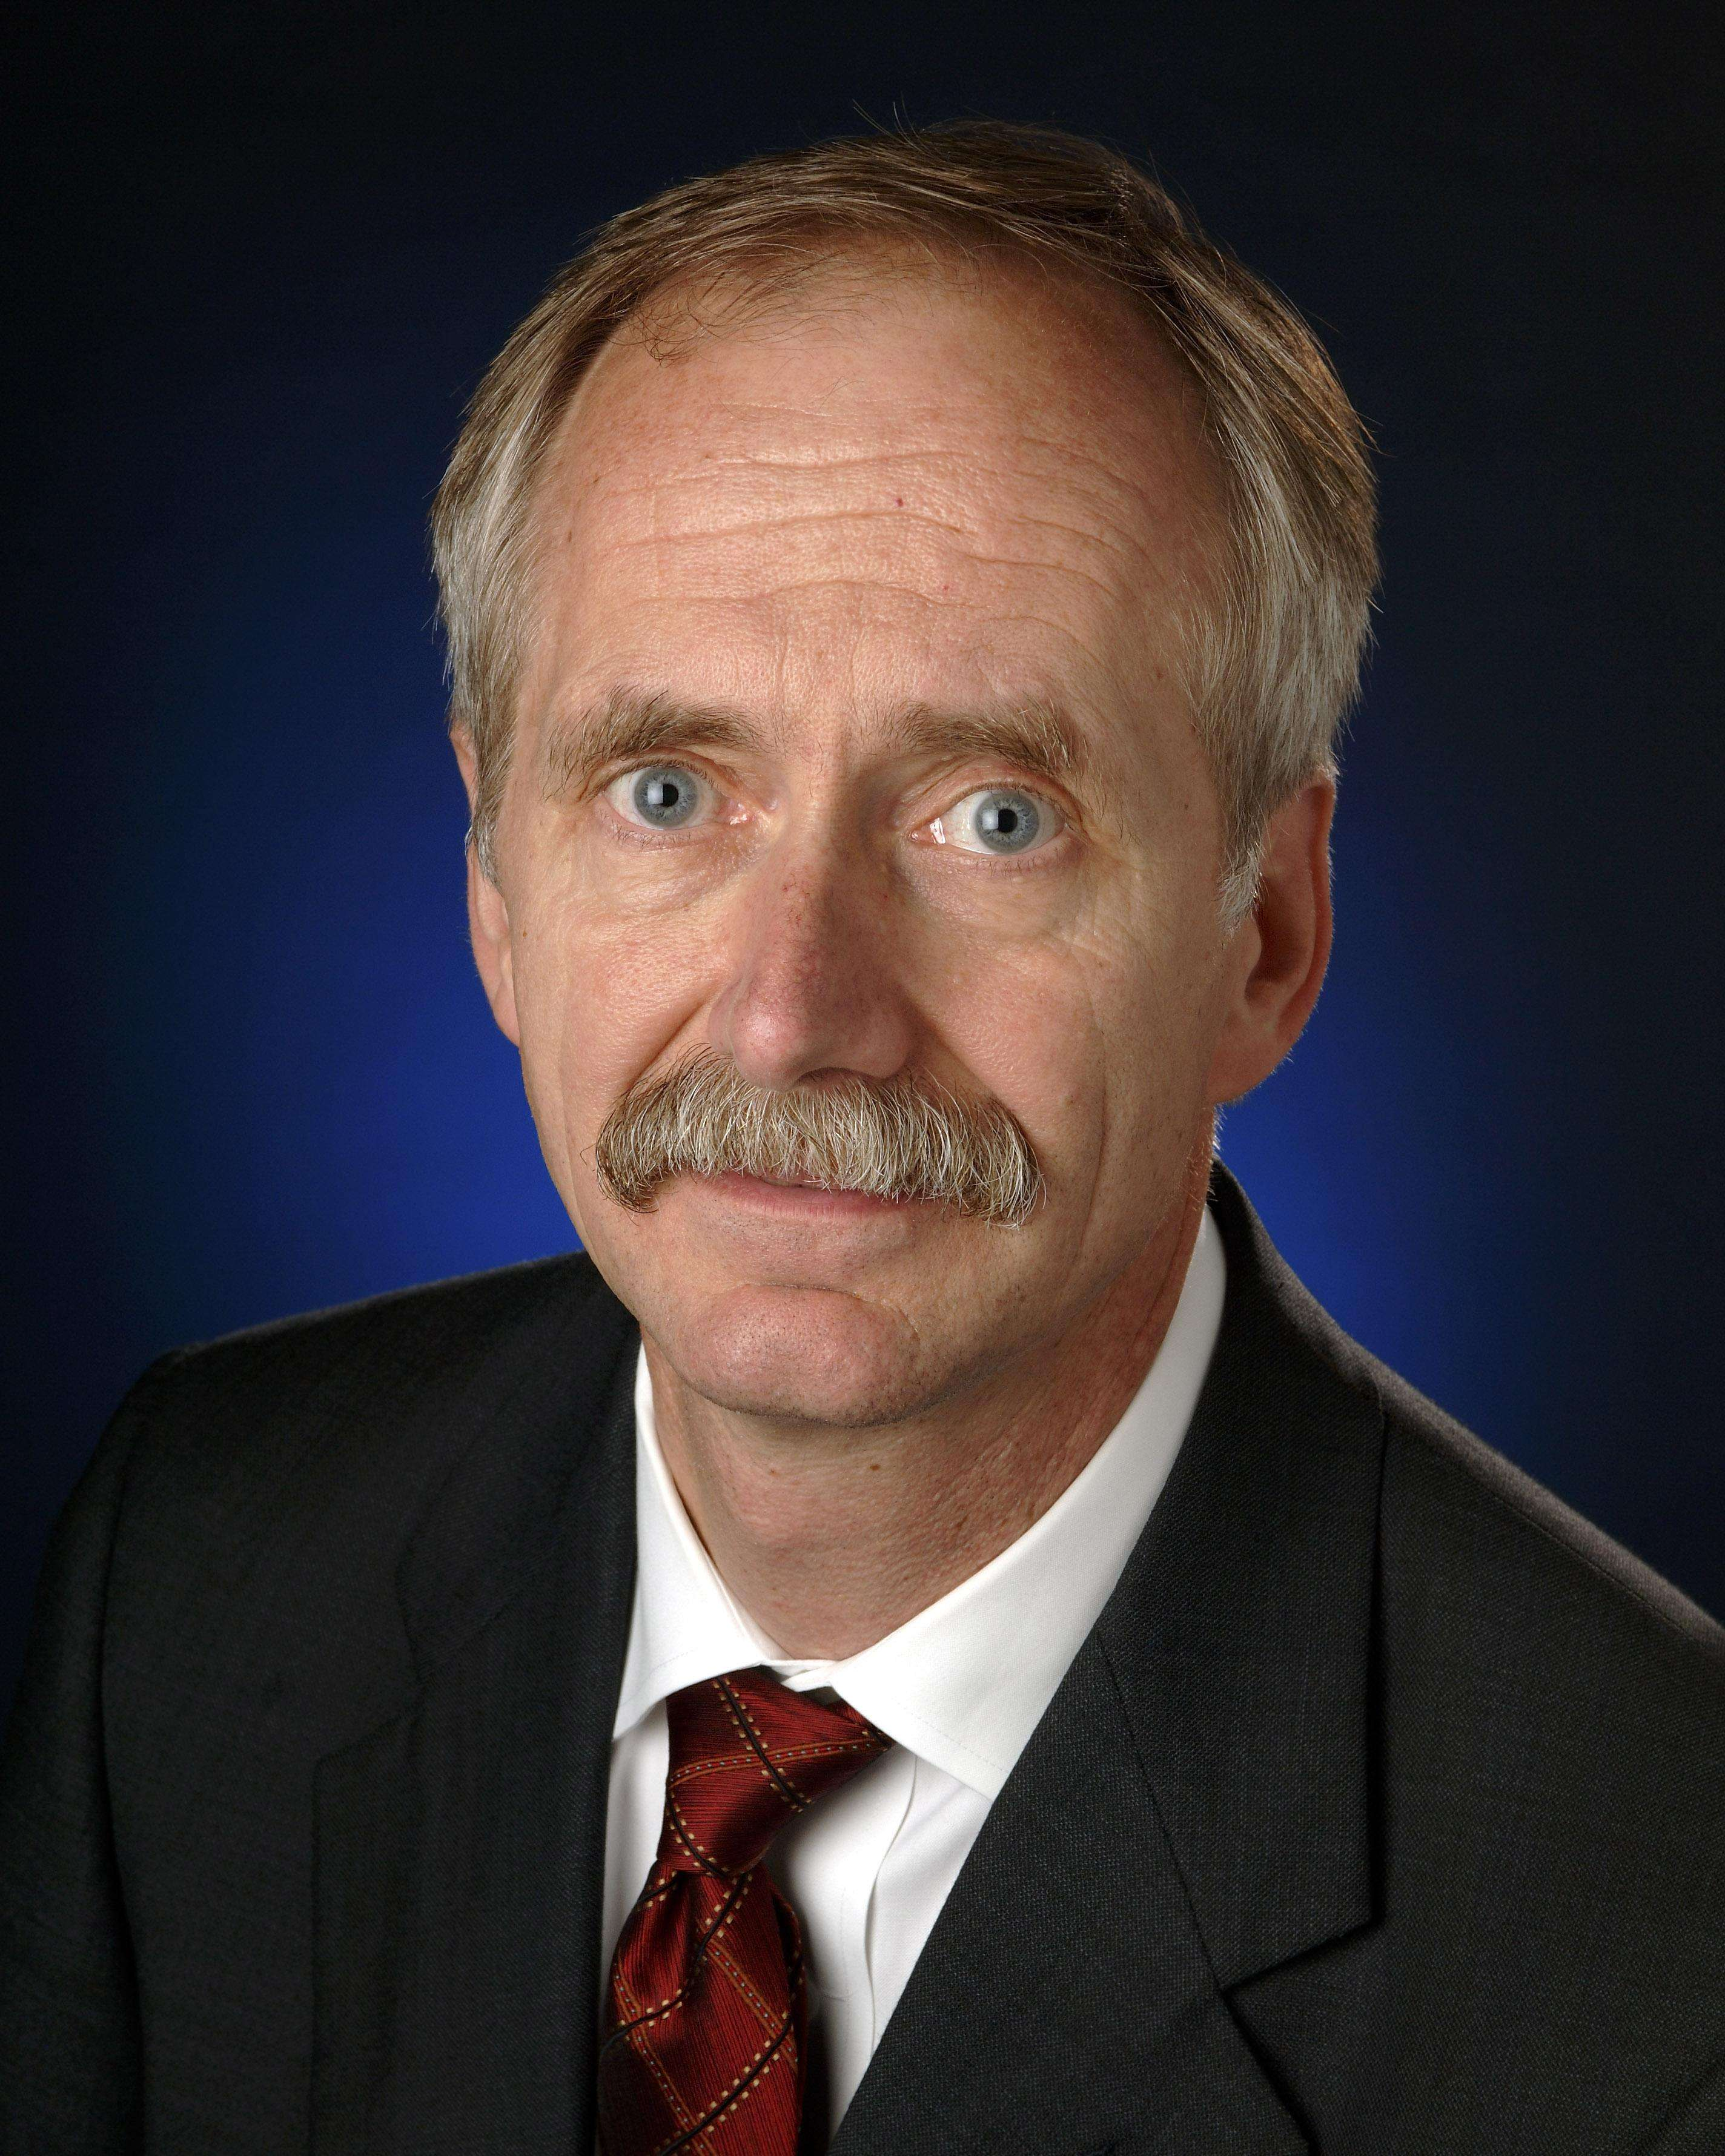 Former Associate Administrator for Space Operations William H. Gerstenmaier (Image Credit: NASA)